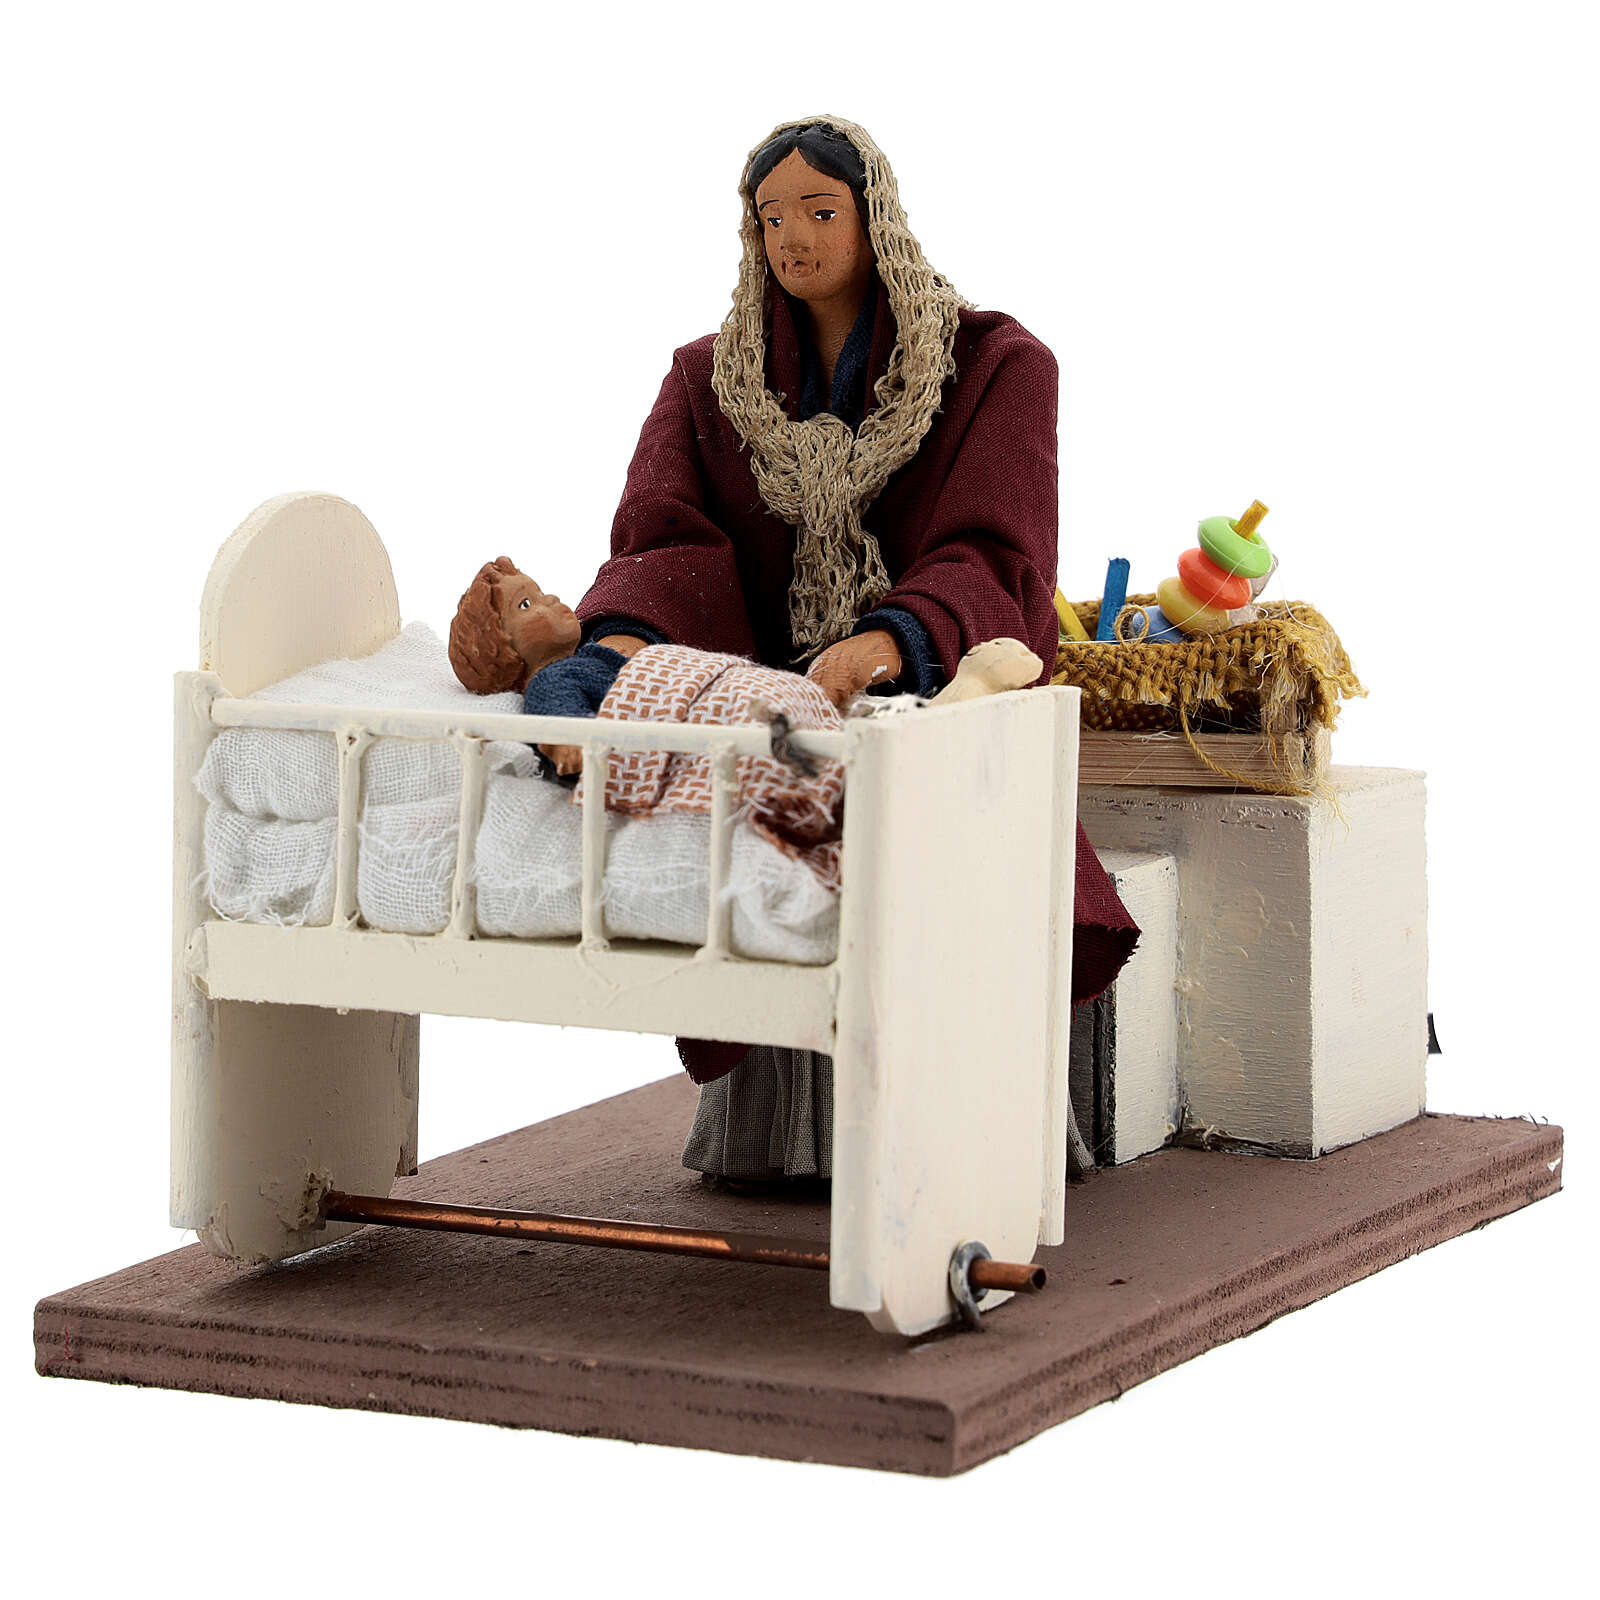 Animated woman soothing baby in crib 12 cm Neapolitan 4